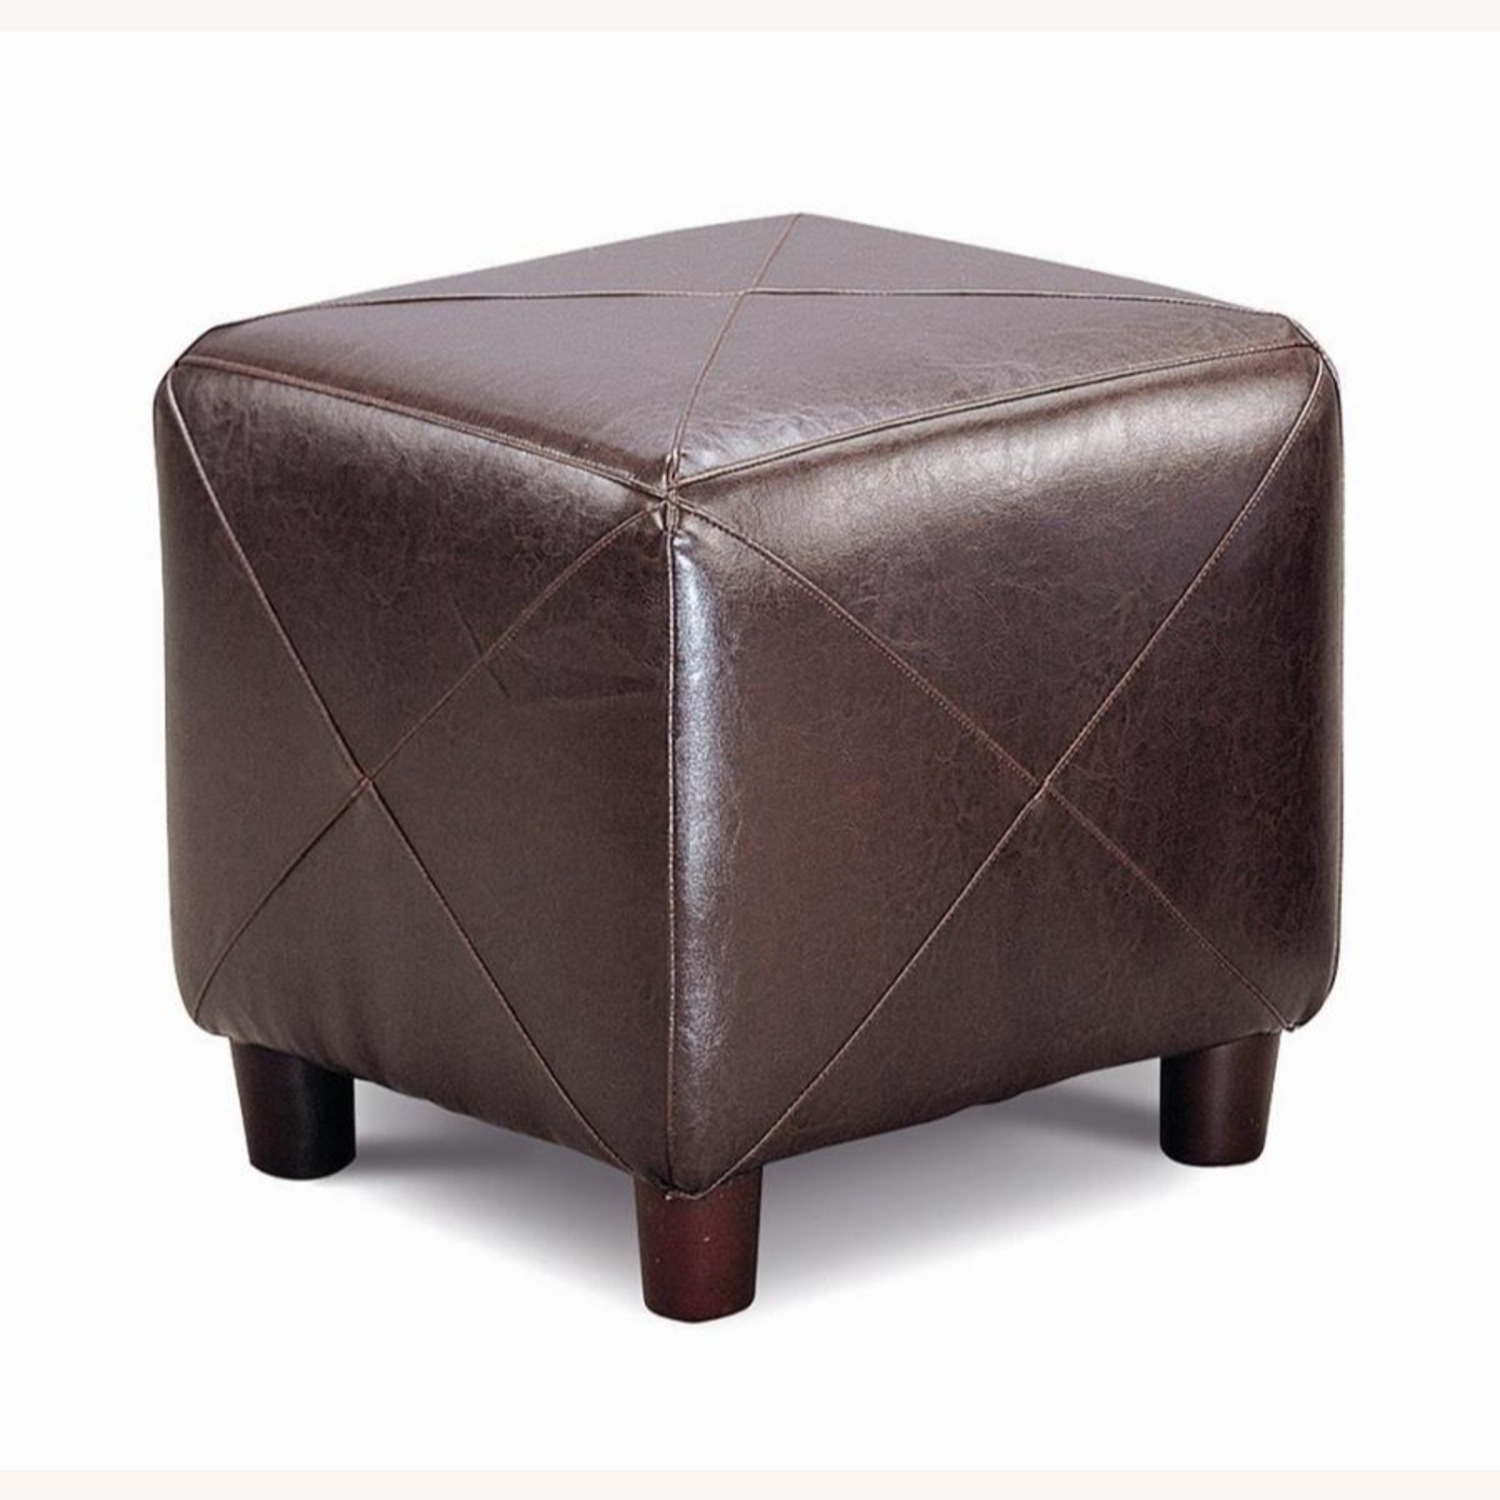 Ottoman In Dark Brown W/ Tapered Legs - image-2